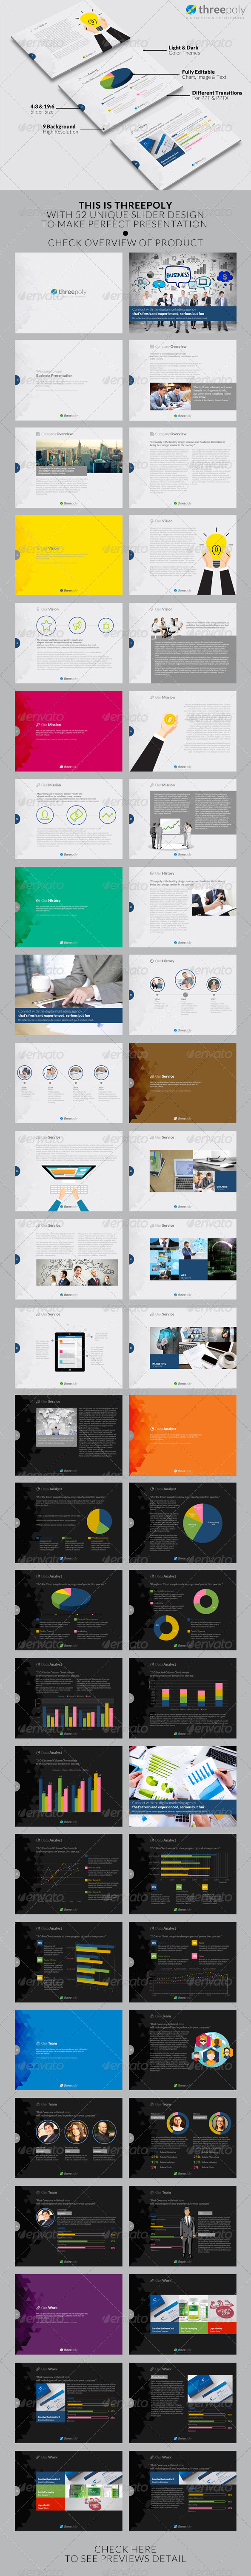 GraphicRiver Threepoly Powerpoint Template 8545089